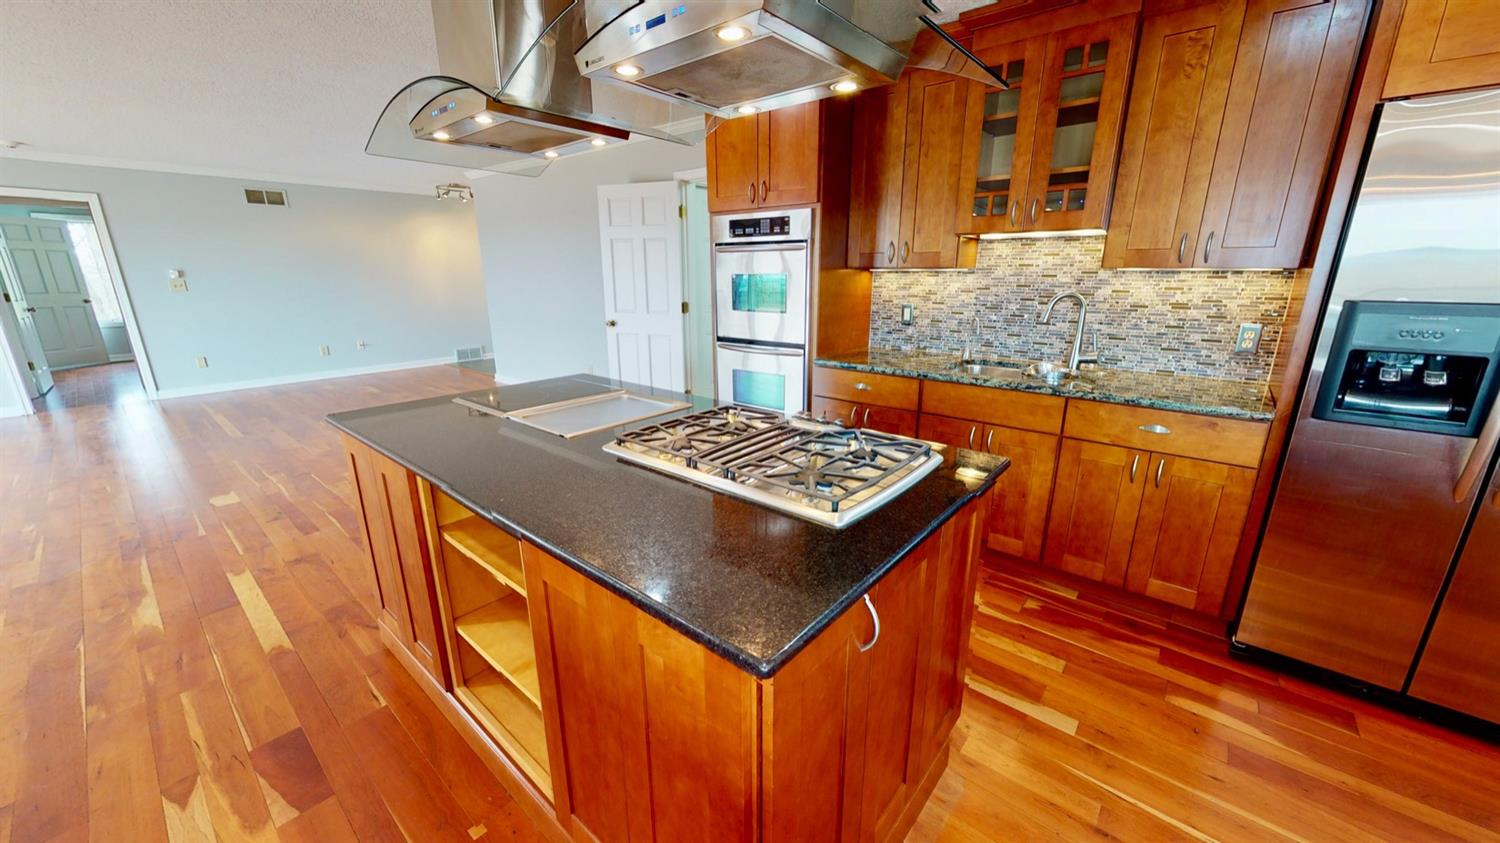 Island including upgraded gas cooktop, Induction cooktop and Yaki Grill surround by the Cavaliere Mounted Range Hood